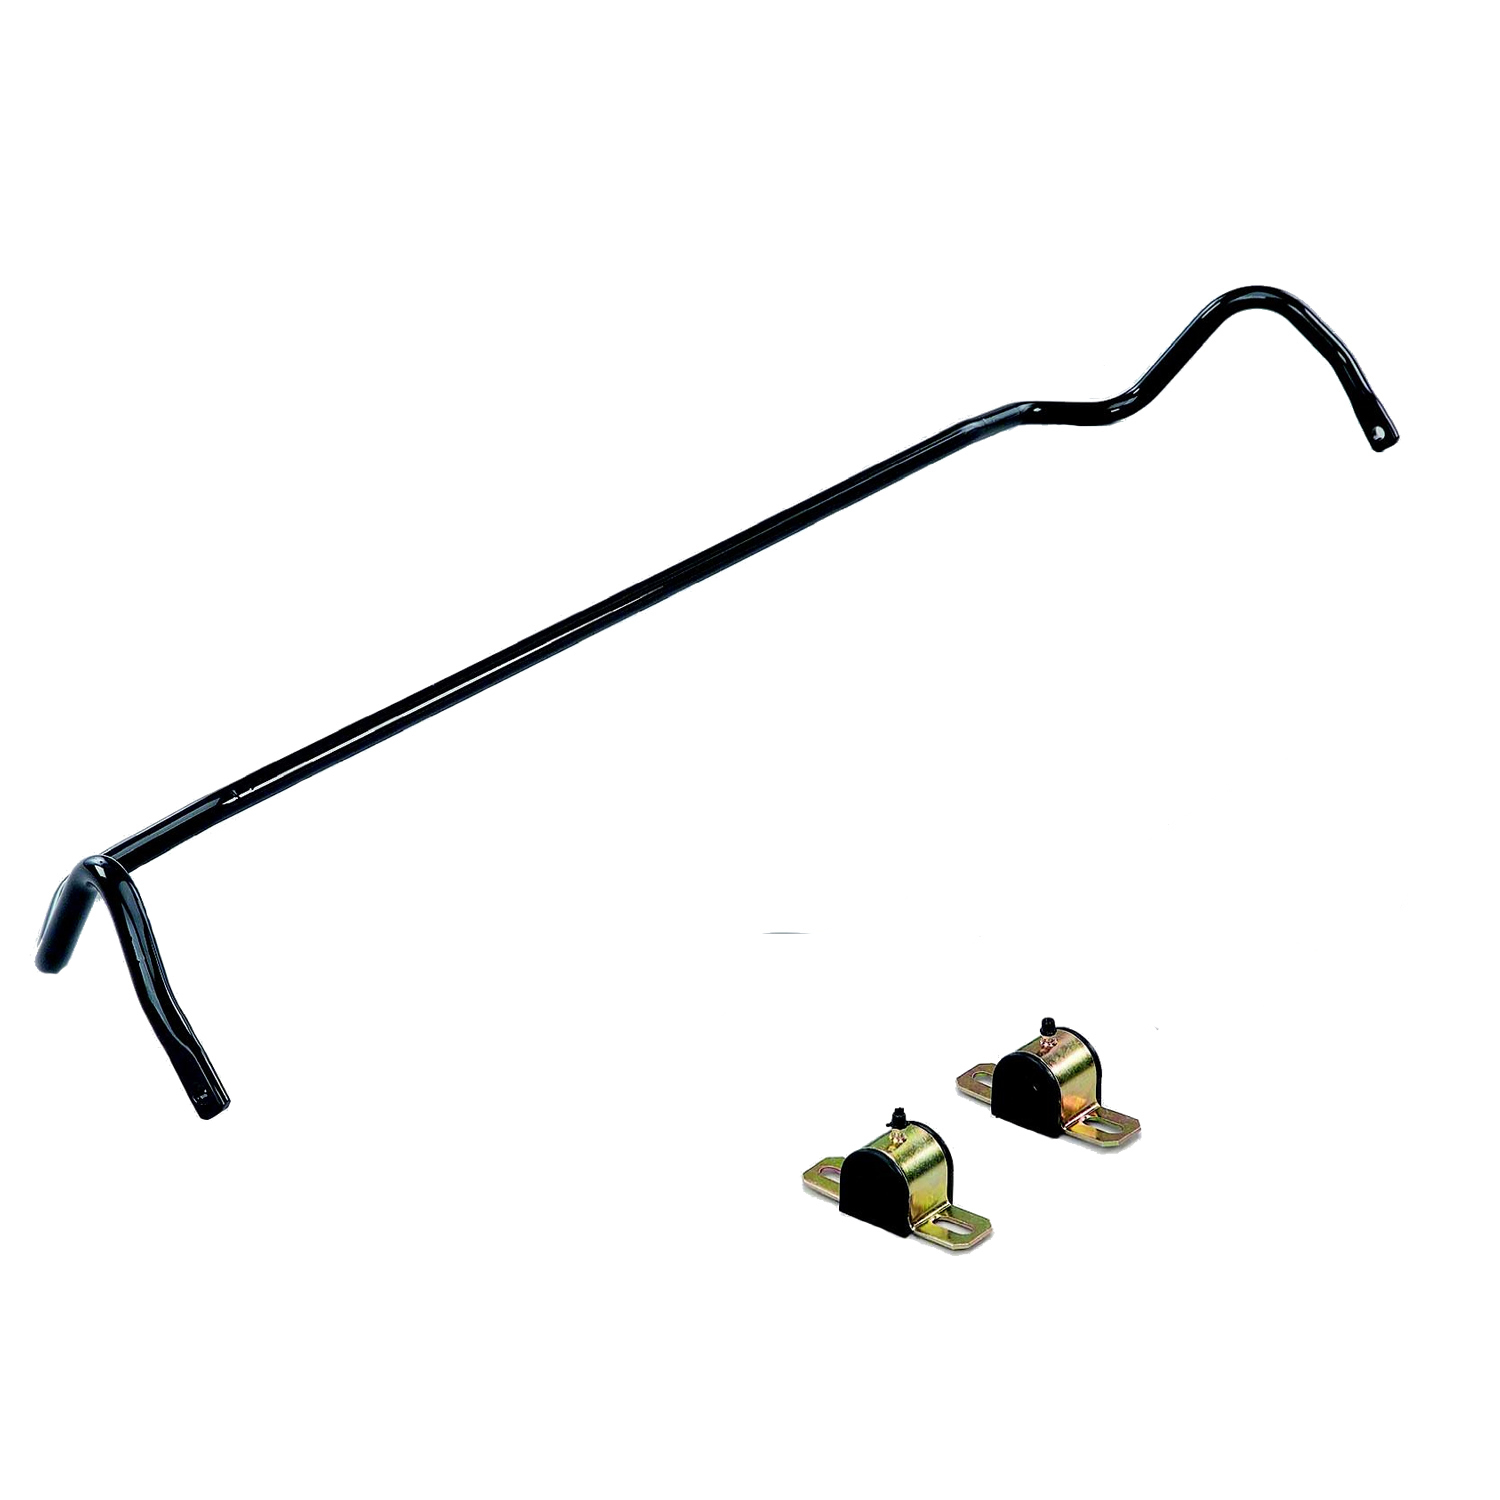 2013+ Dodge Challenger R/T V6 Rear Sway Bar Set from Hotchkis Sport Suspension